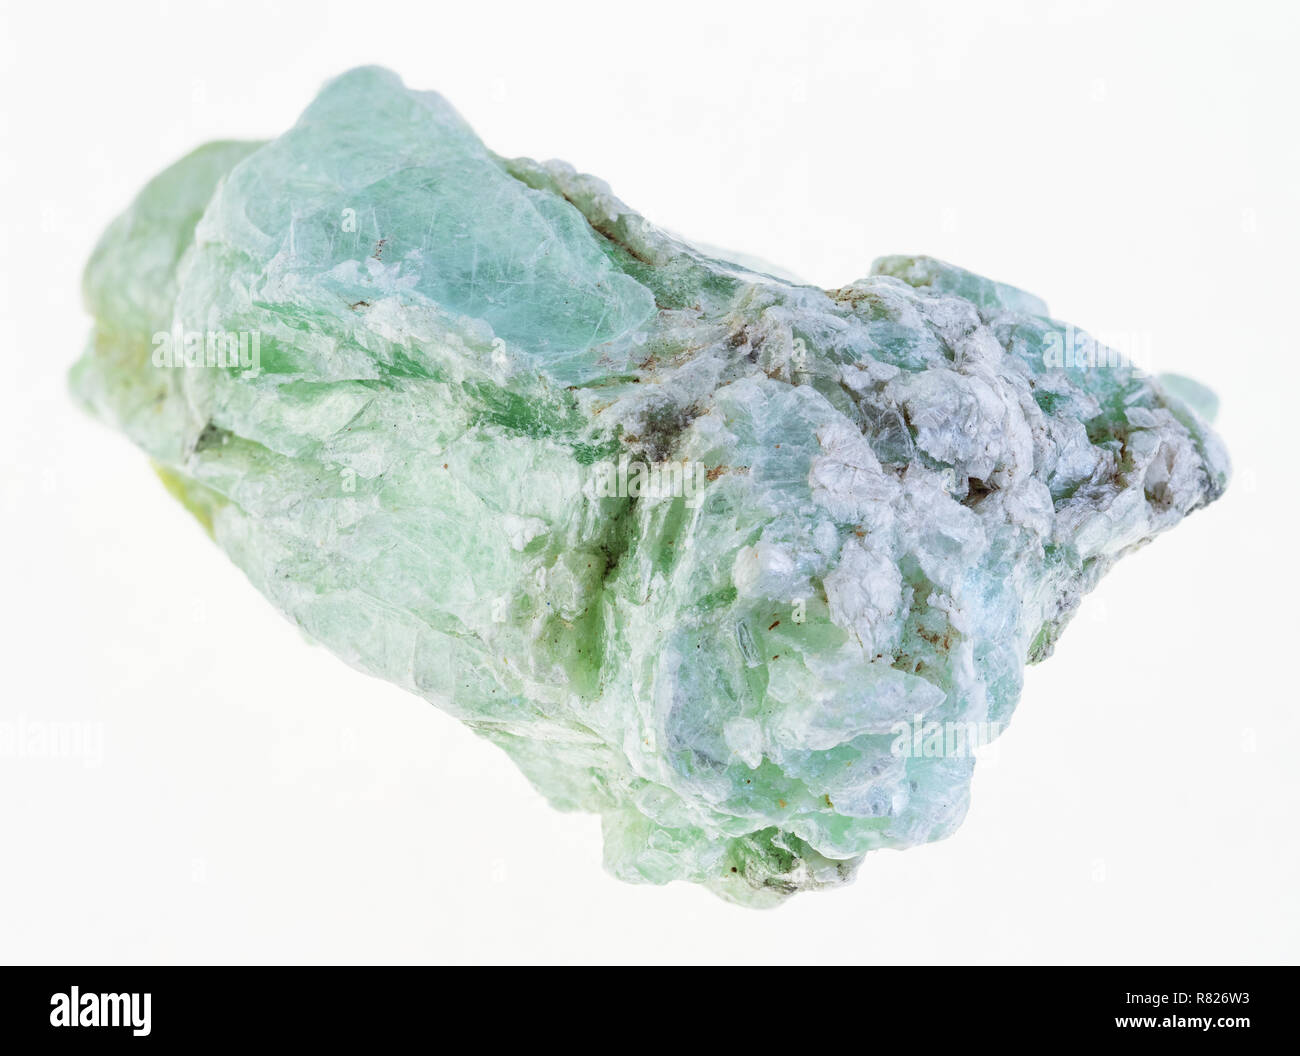 macro photography of natural mineral from geological collection - rough green talc stone on white background - Stock Image